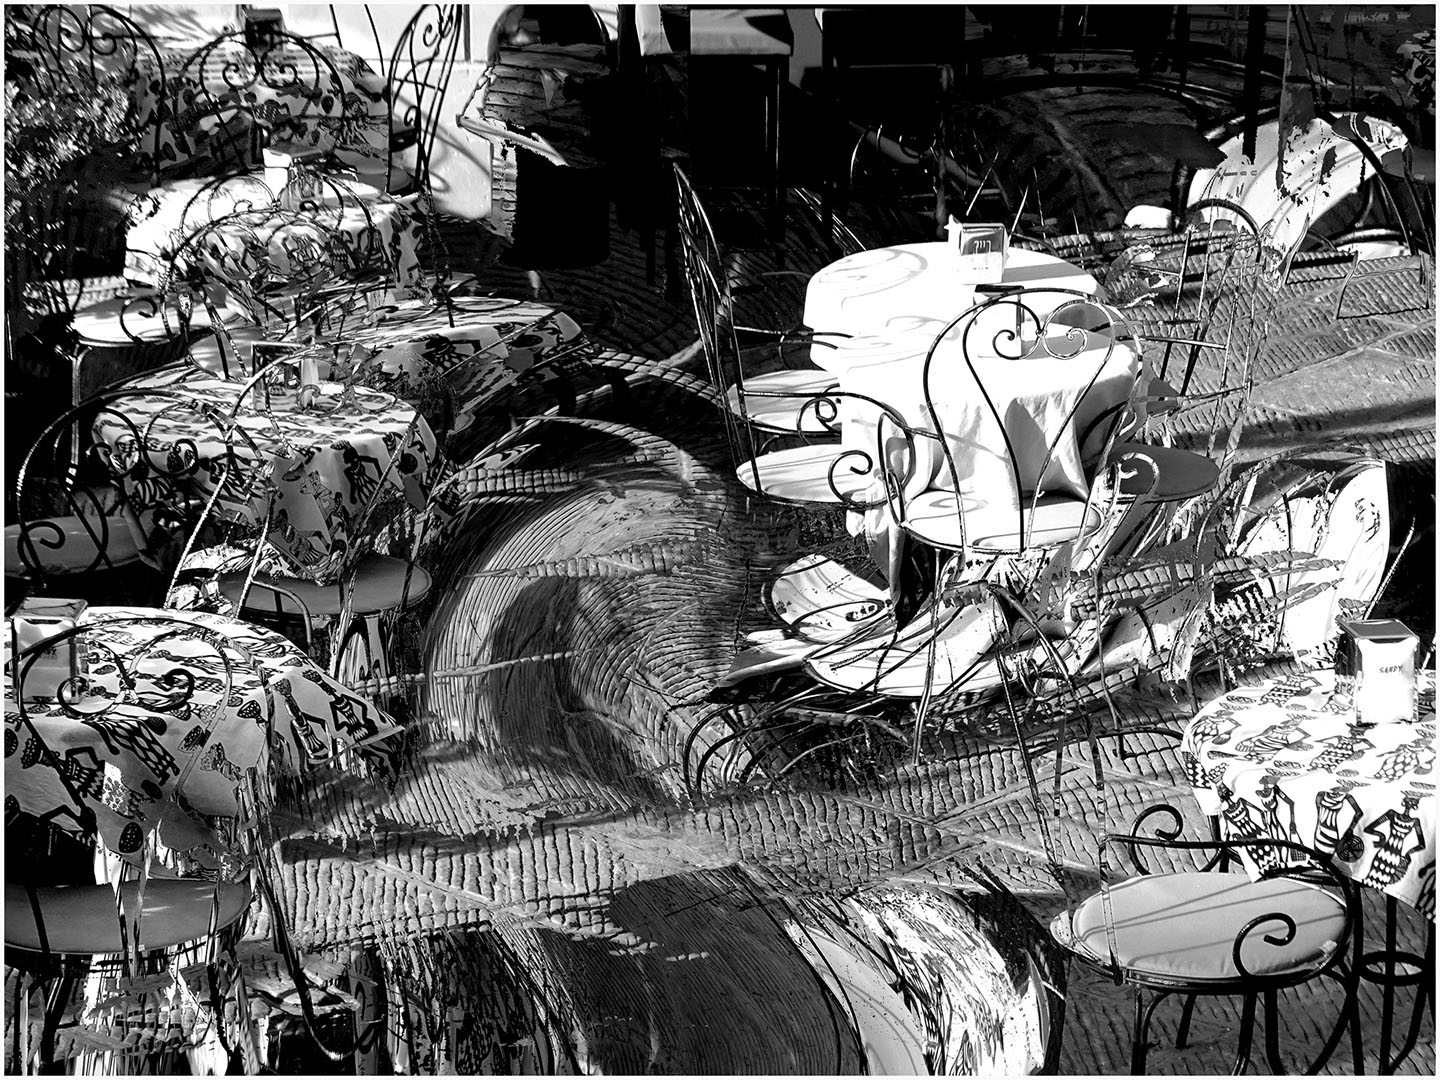 Table_Manners_in_Black_and_White_030_I17.7.79